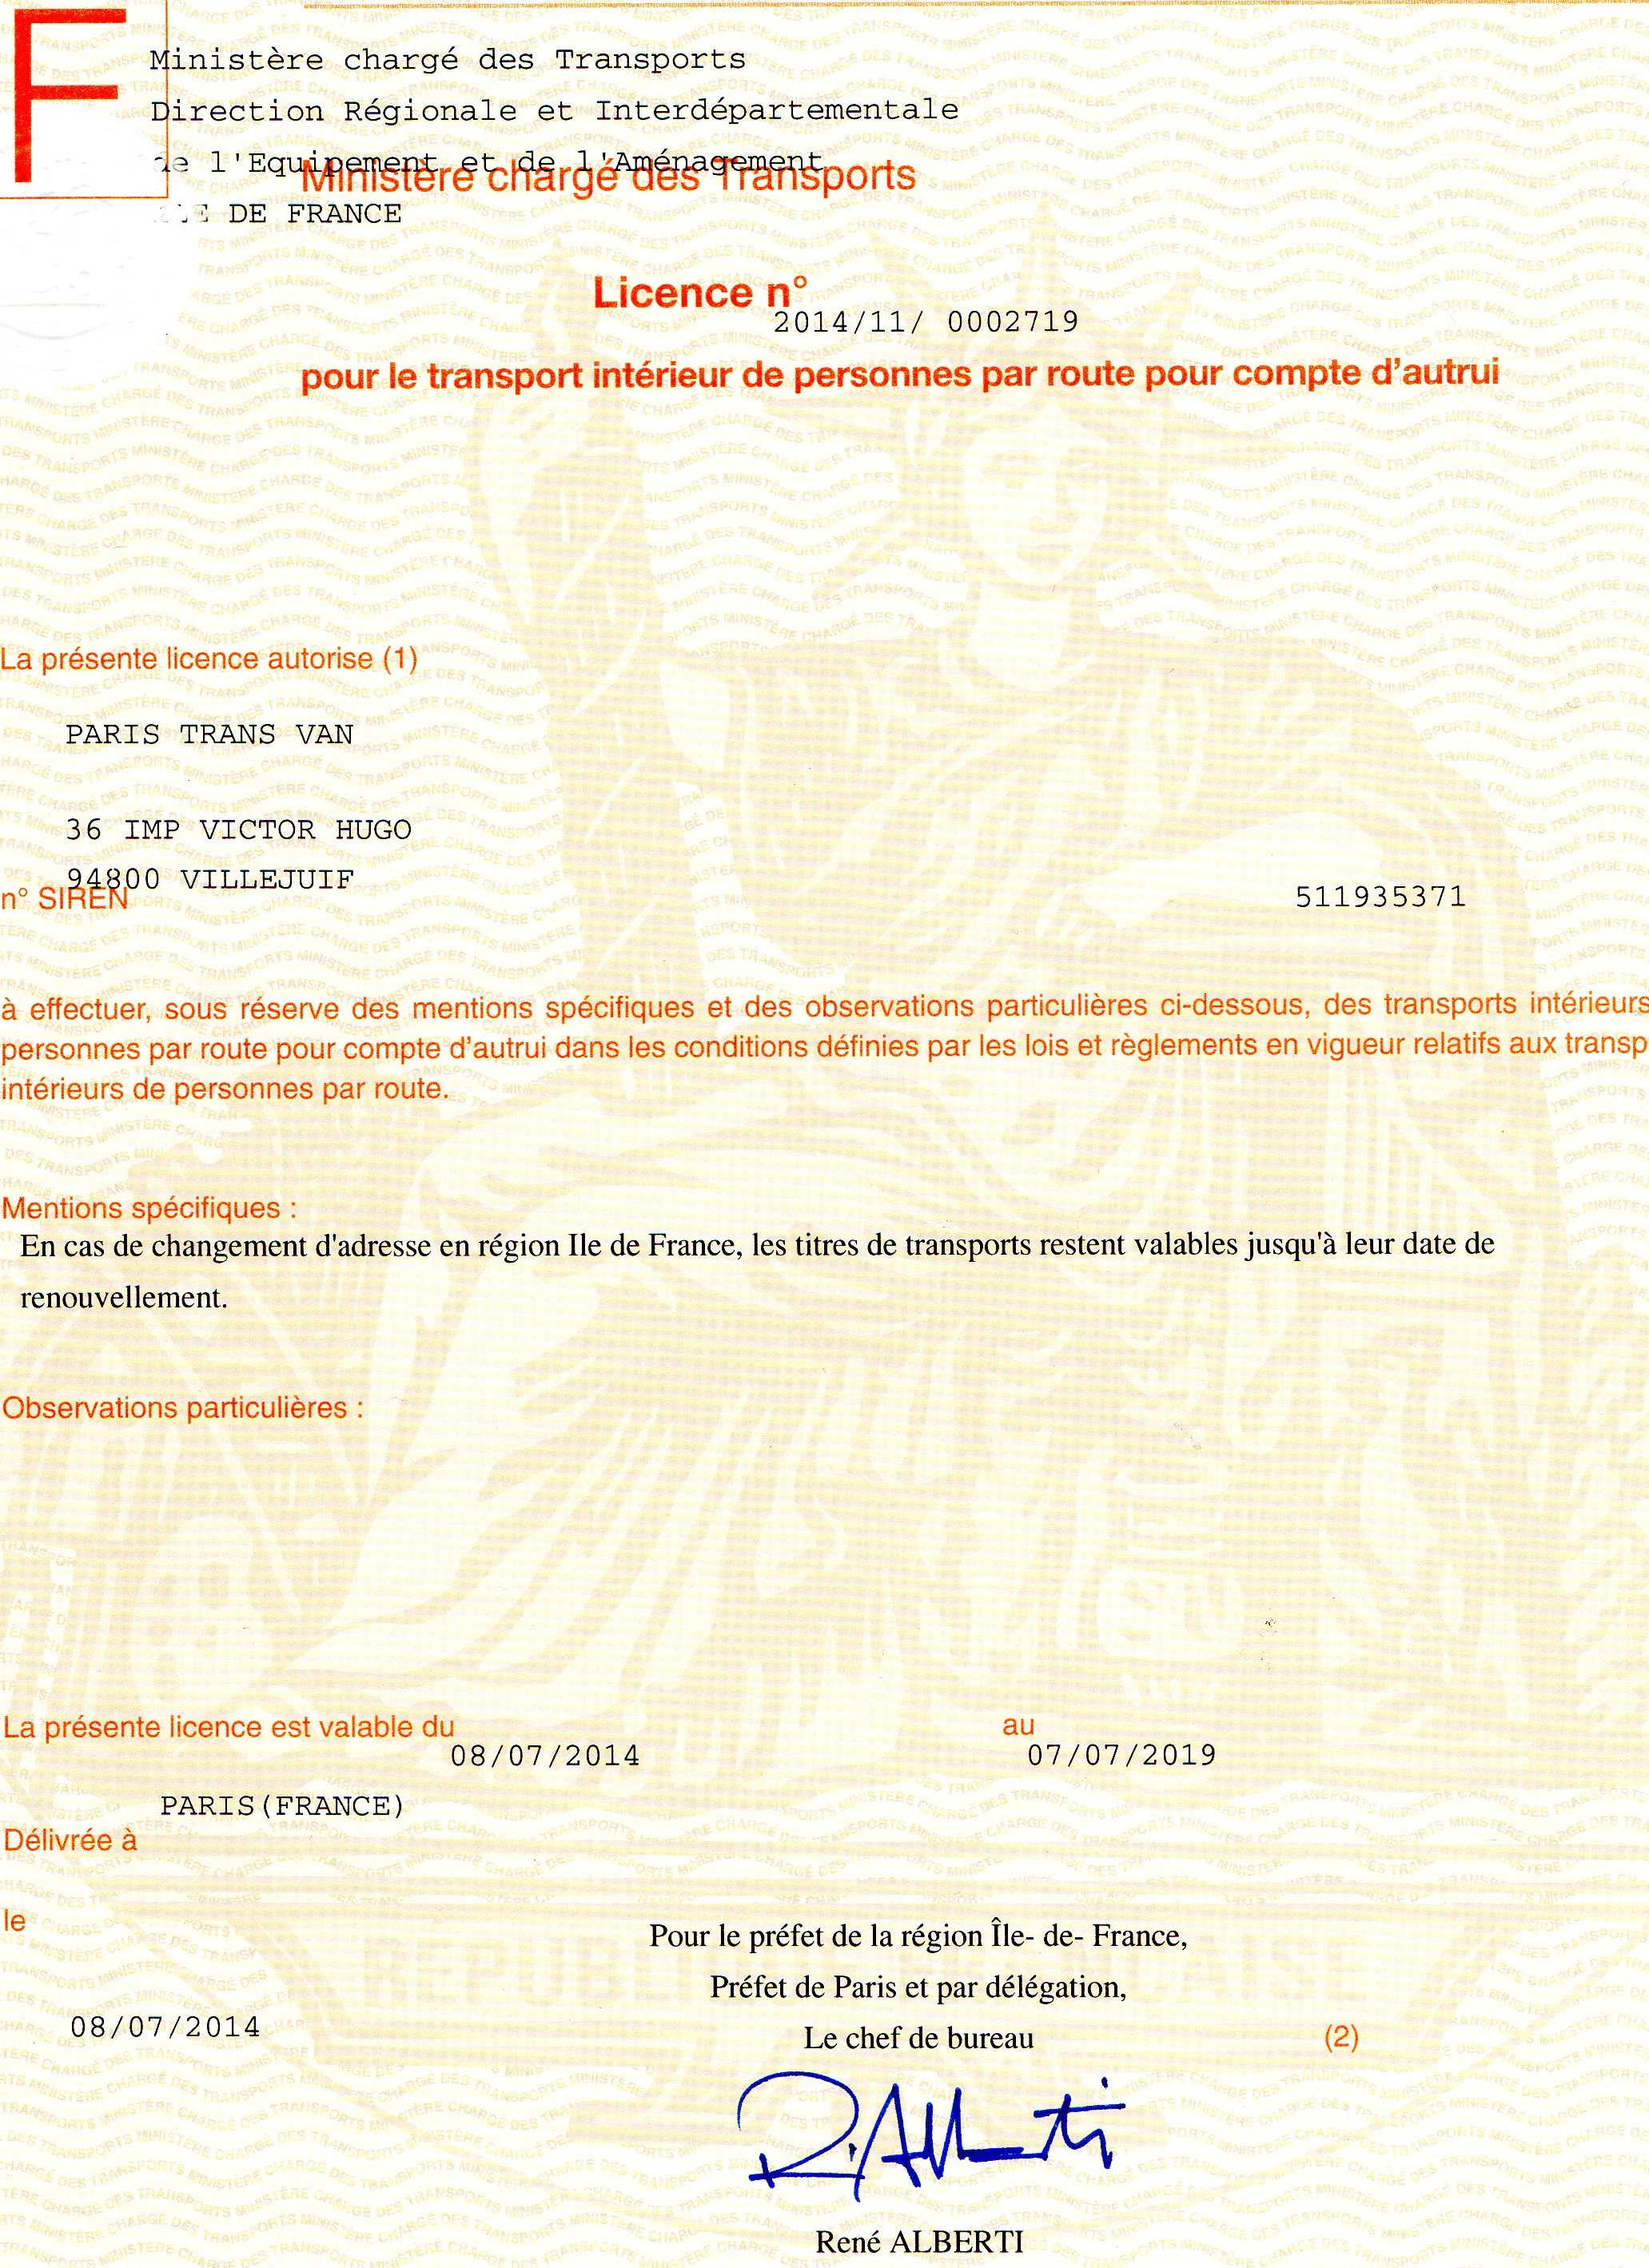 PARIS TRANS VAN transport licence